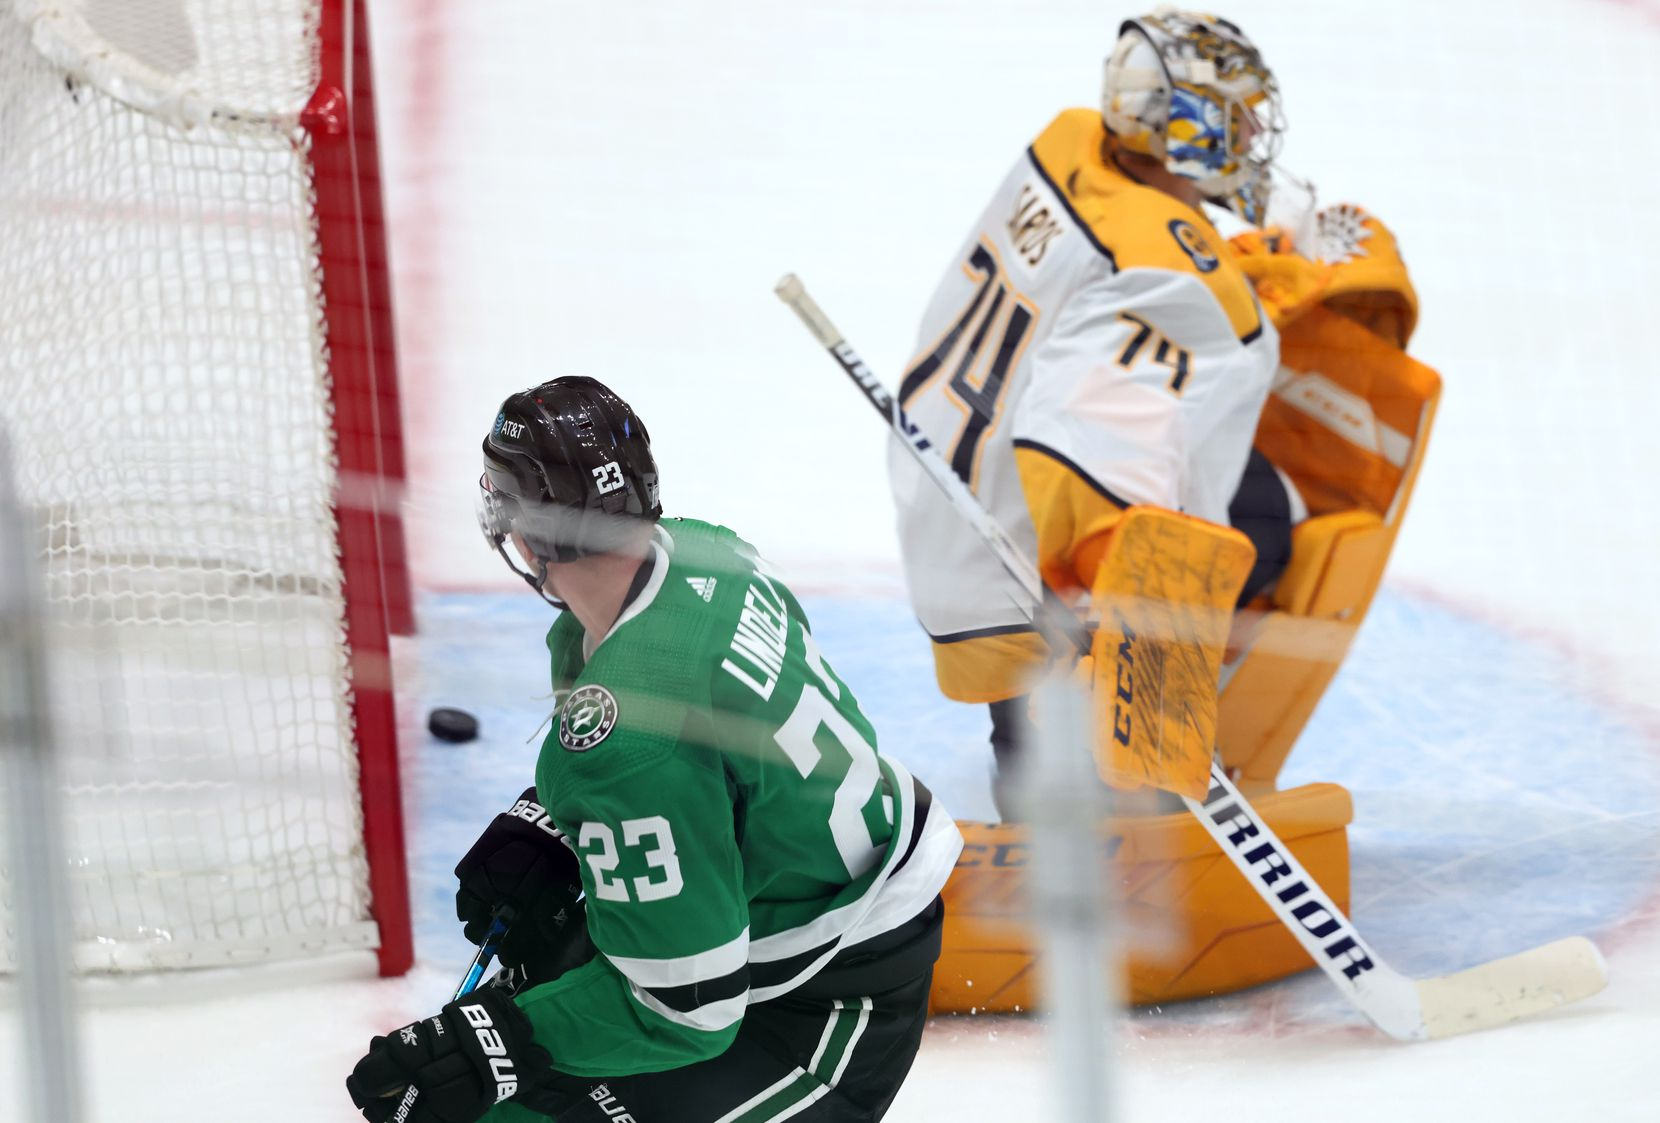 Dallas Stars defenseman Esa Lindell (23) watches his shot pass Nashville Predators goaltender Juuse Saros (74) for a goal during the second period of play in the Stars home opener at American Airlines Center on Friday, January 22, 2021in Dallas. (Vernon Bryant/The Dallas Morning News)